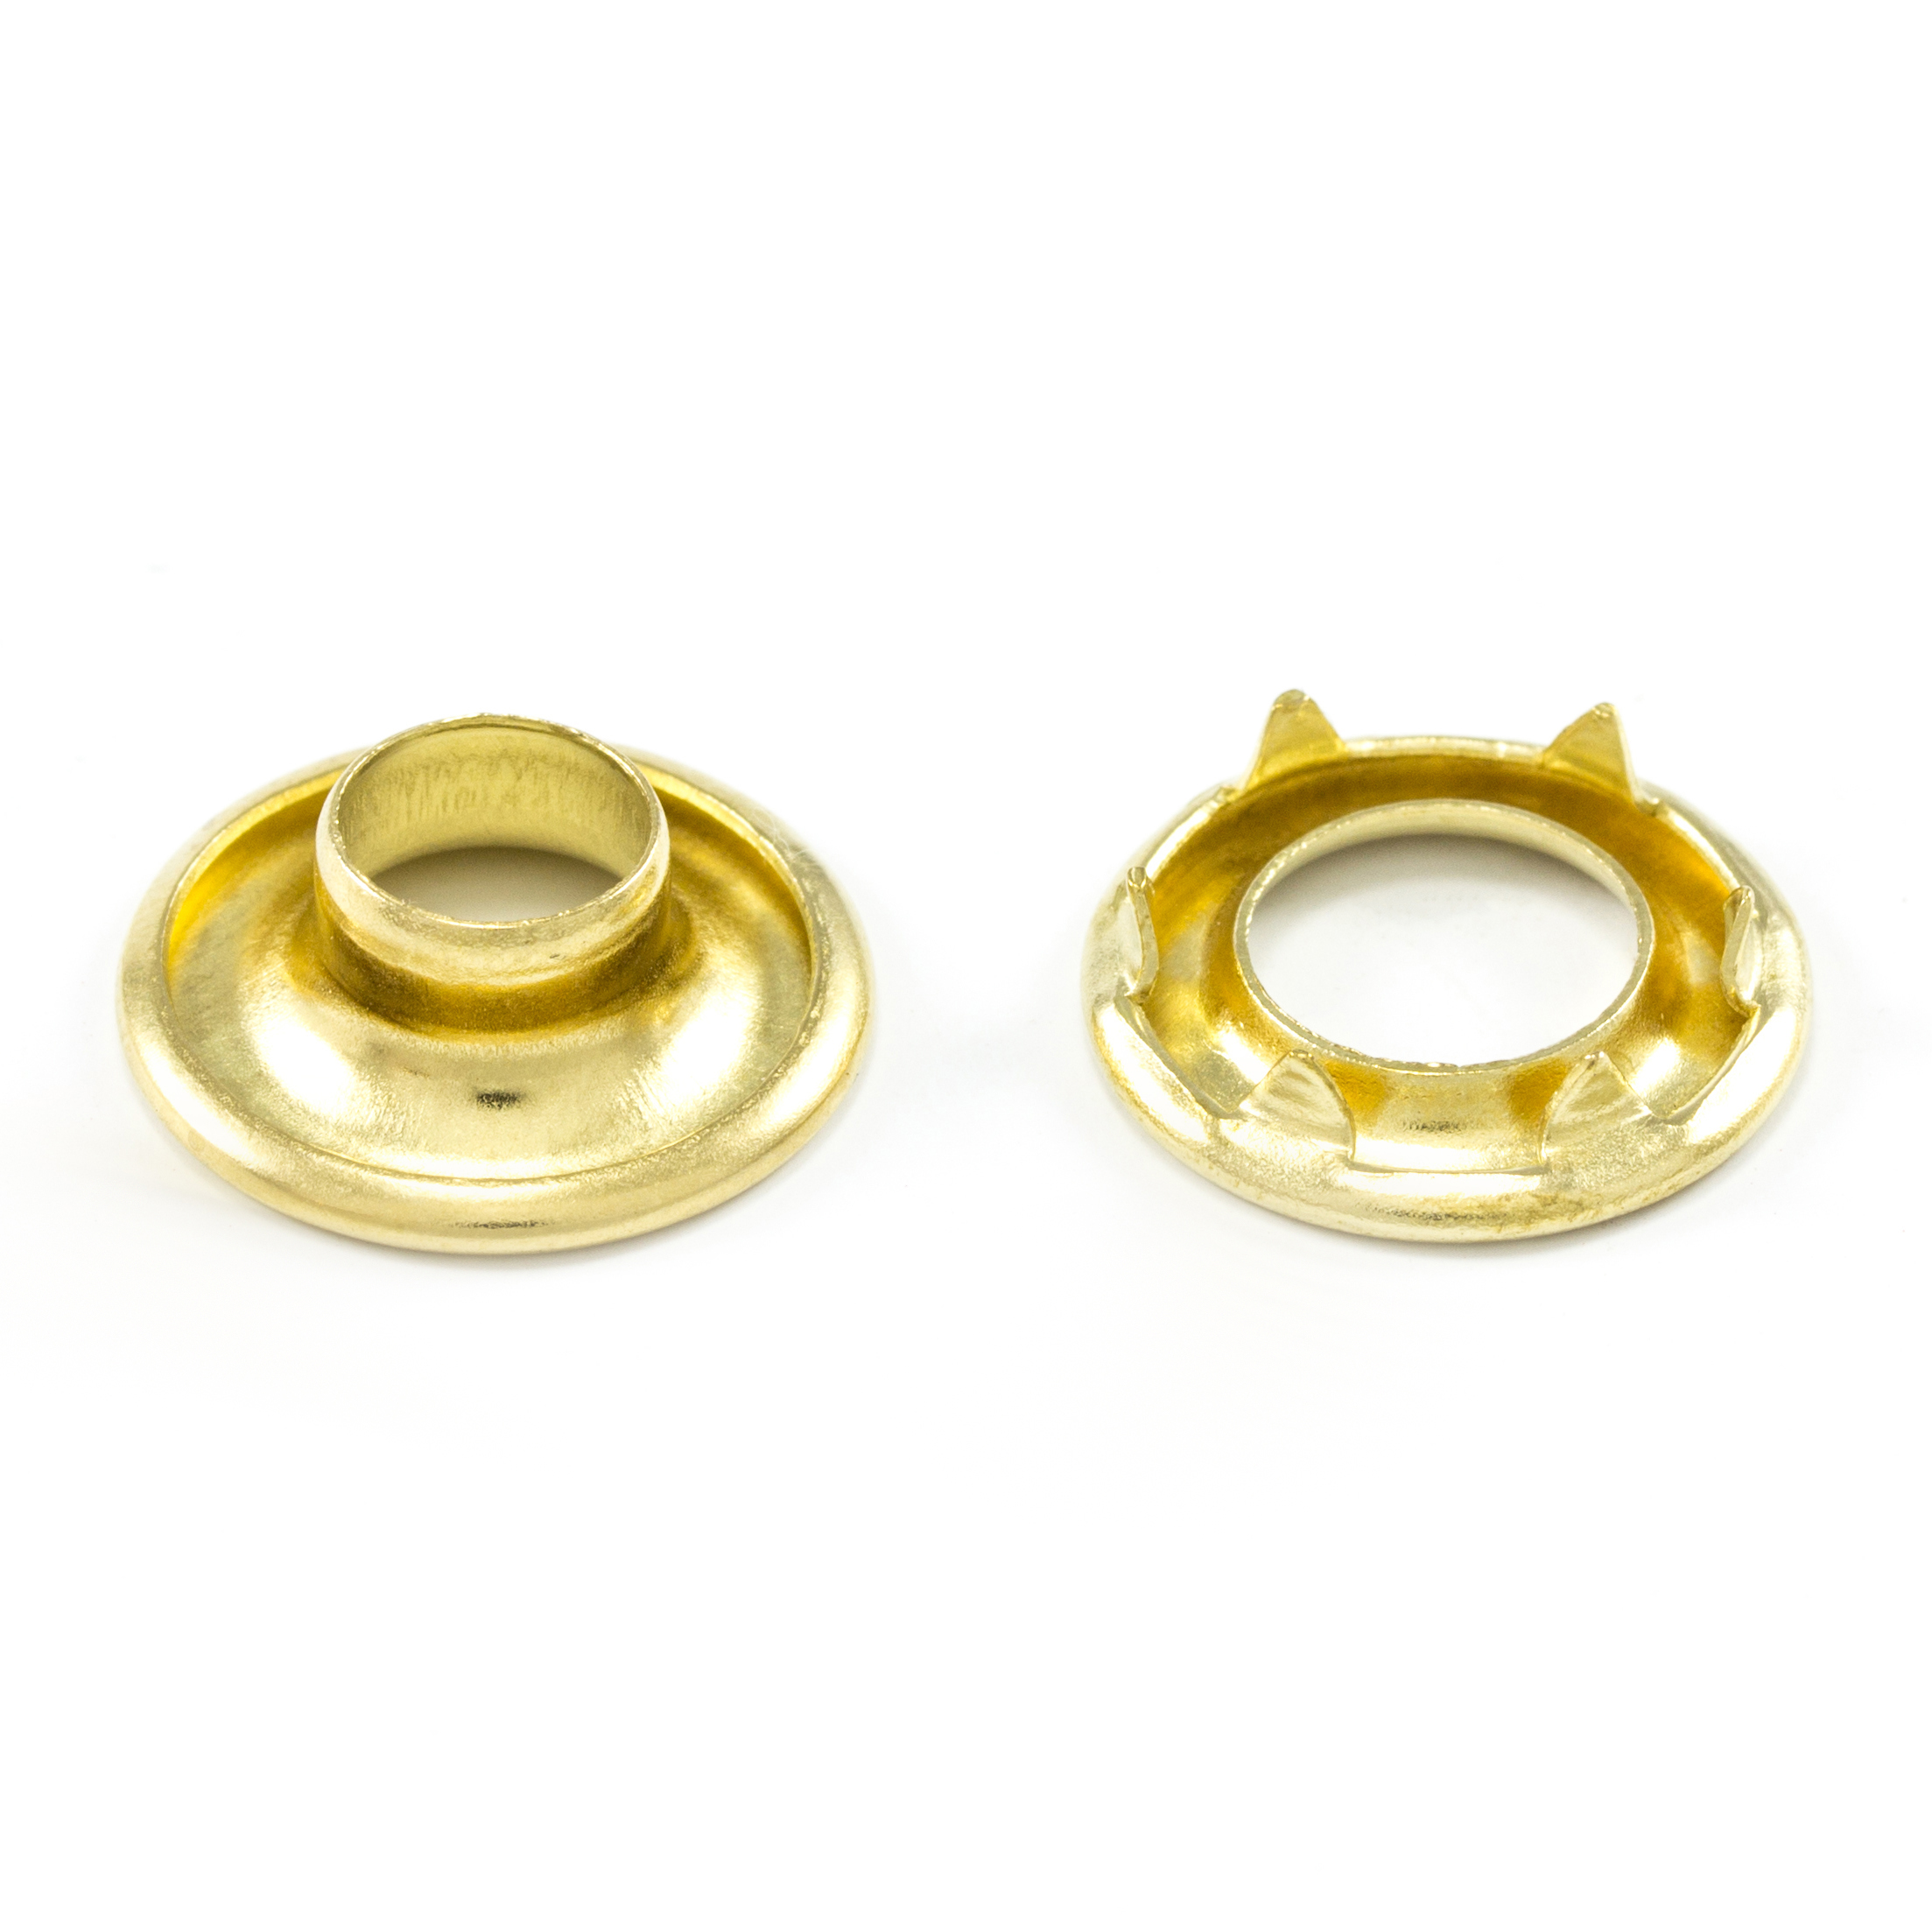 DOT Rolled Rim Grommet with Spur Washer #0 Brass 9/32